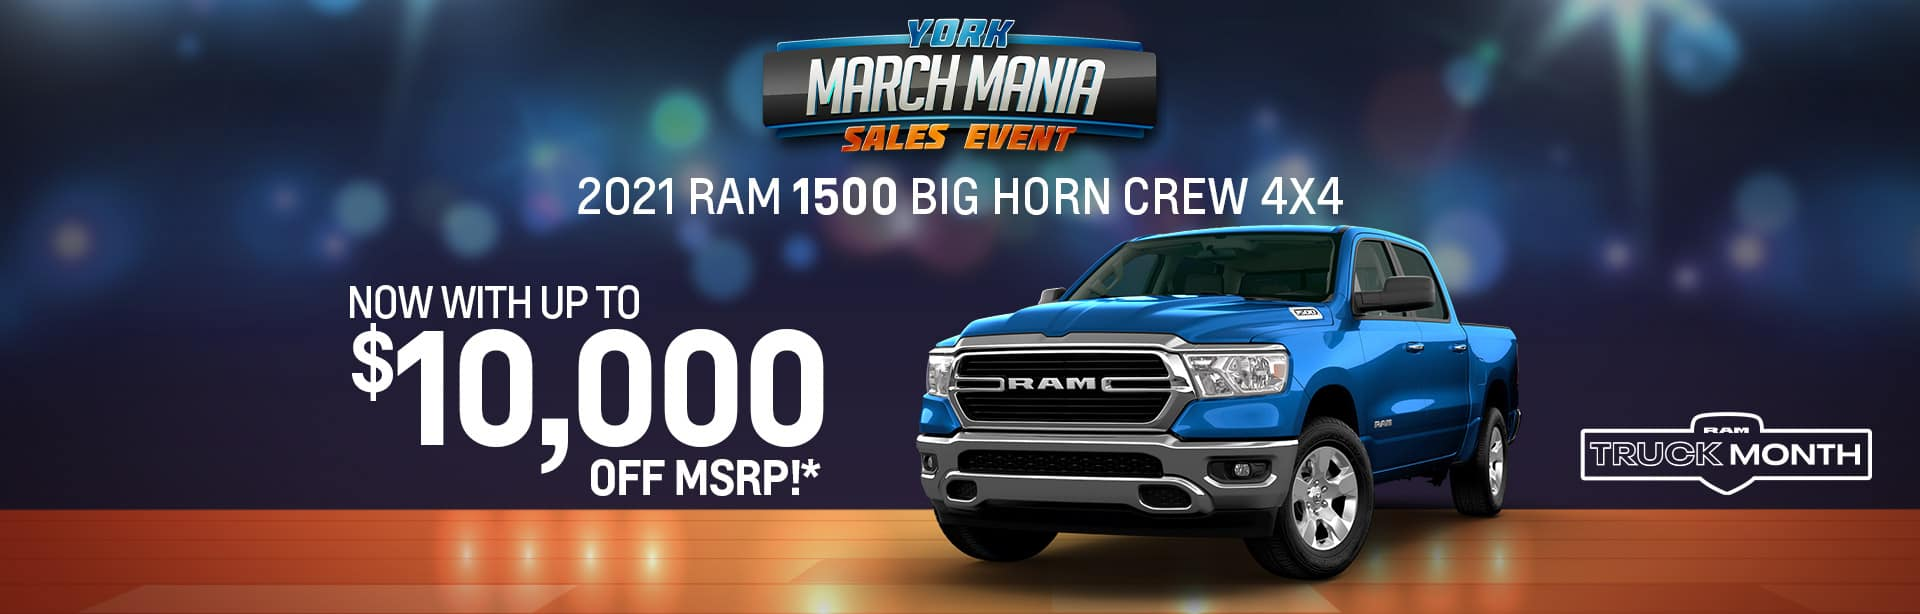 2021 RAM 1500 Big Horn Rebate offer offer near Indianapolis IN